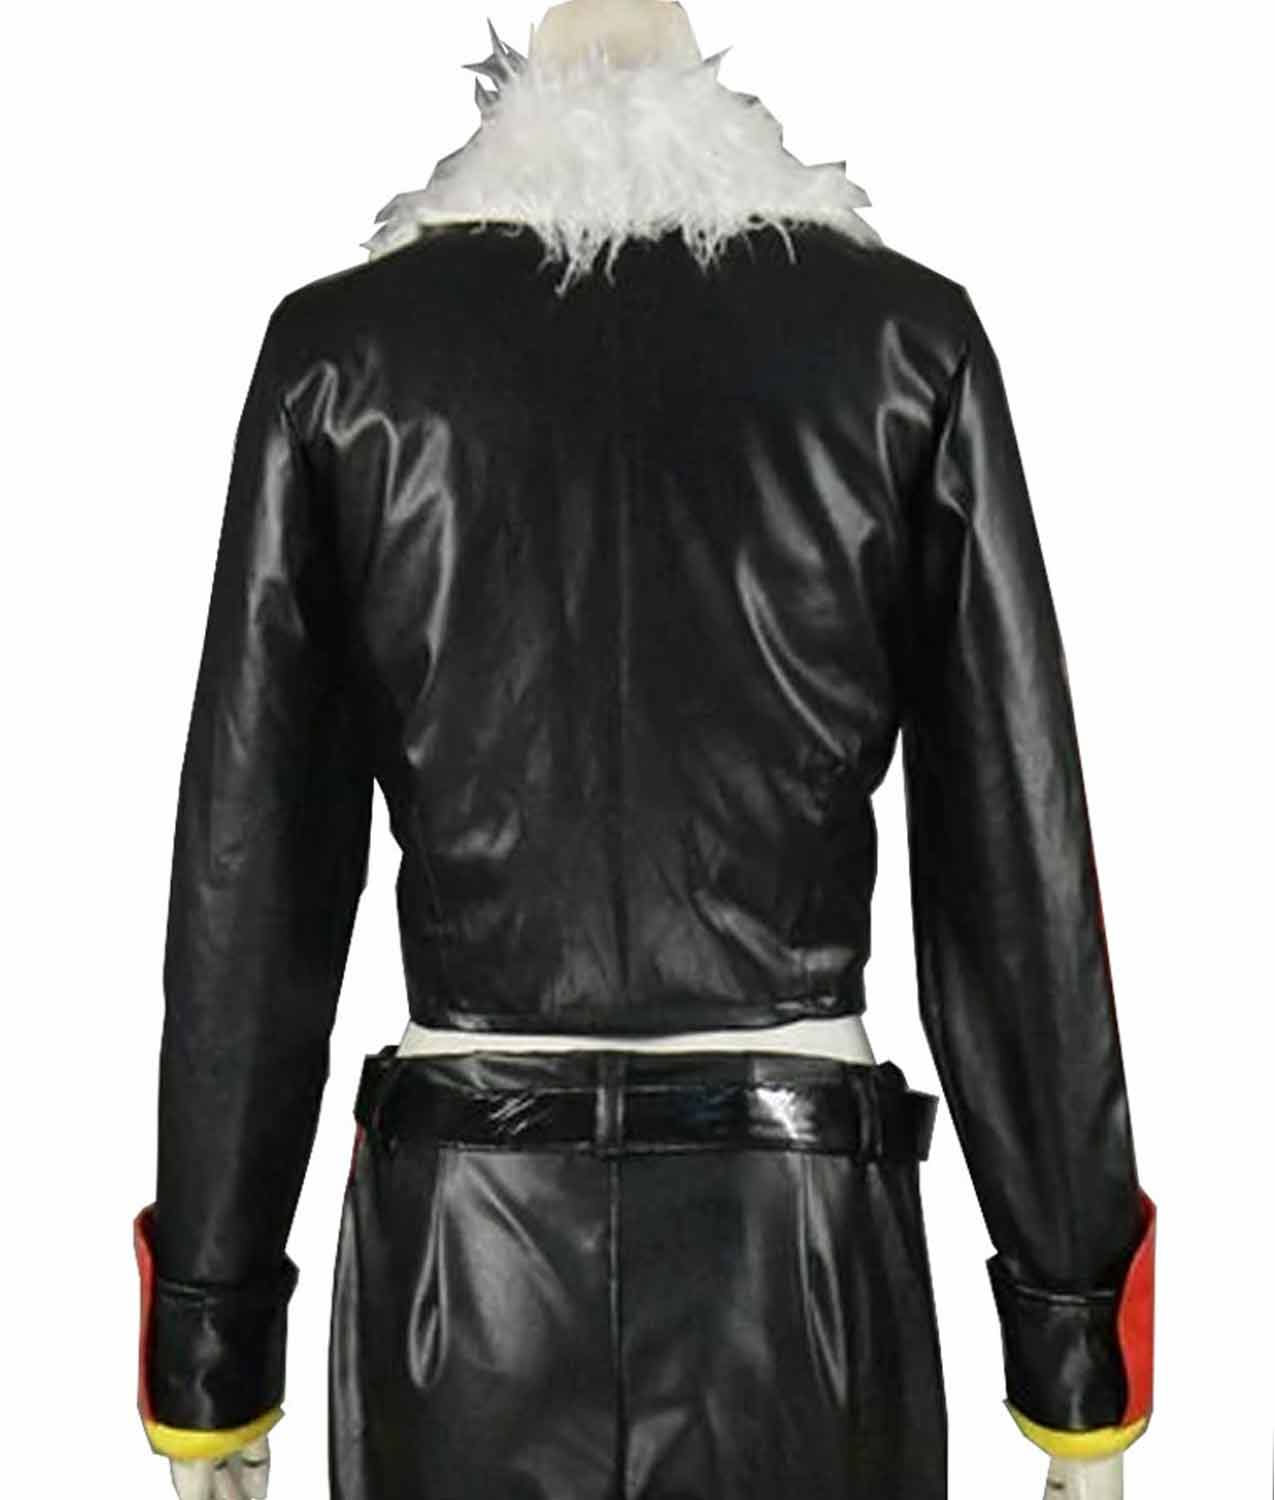 Sonic Video Game Shadow The Hedgehog Jacket Jackets Creator